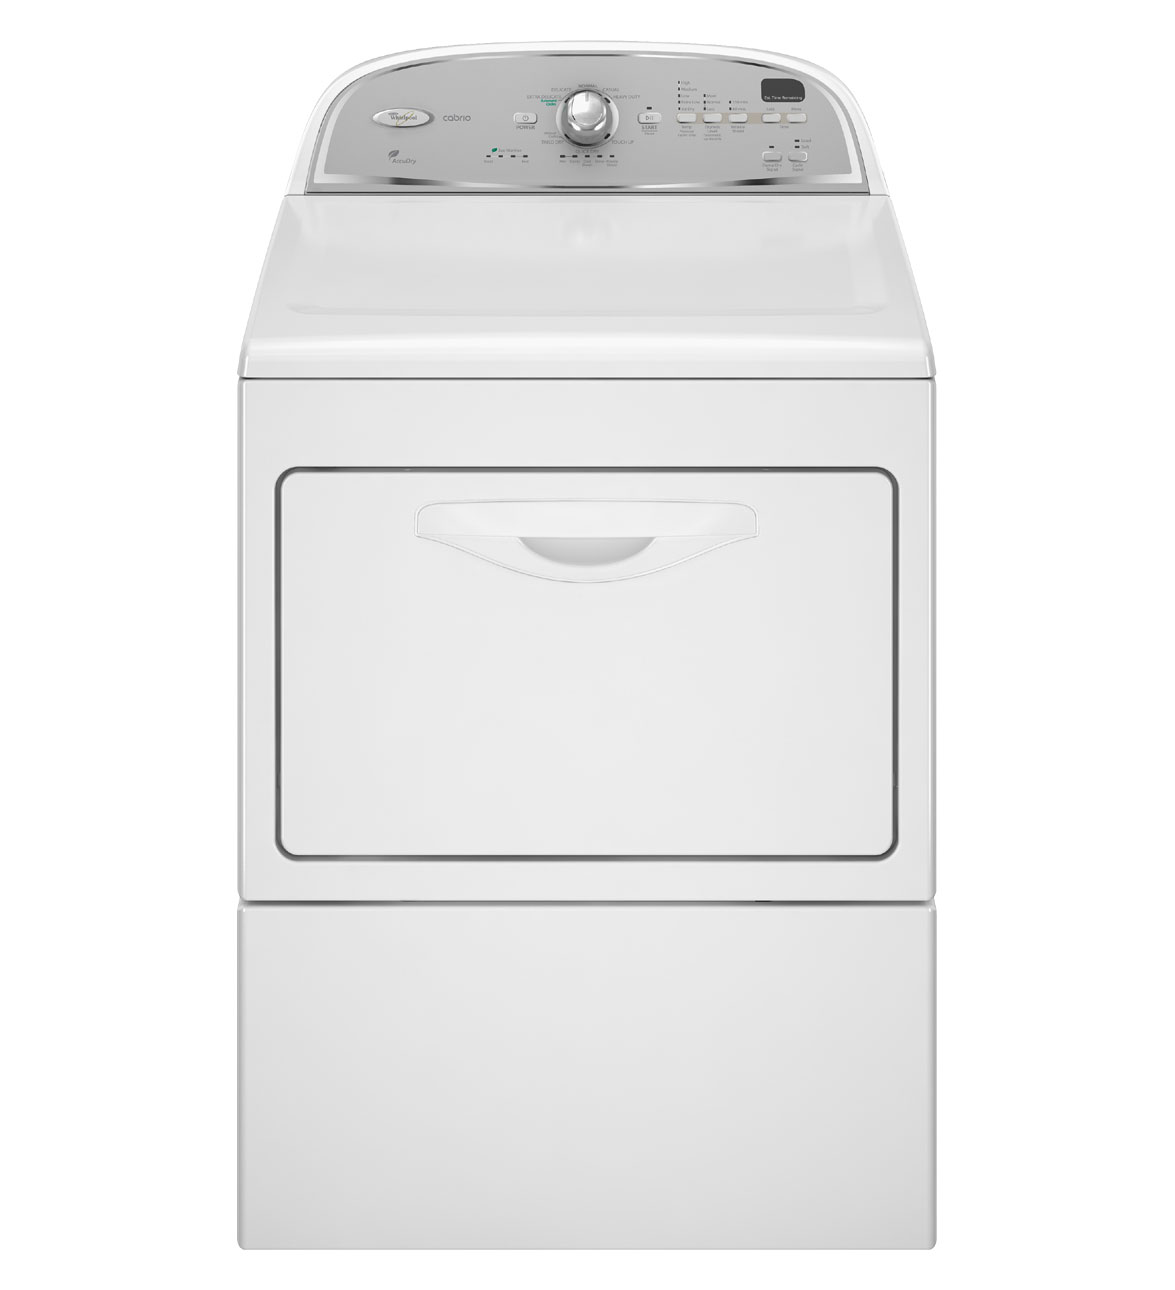 Whirlpool Cabrio 7.4 cu. ft. Electric Dryer in White (Model: WED5600XW)